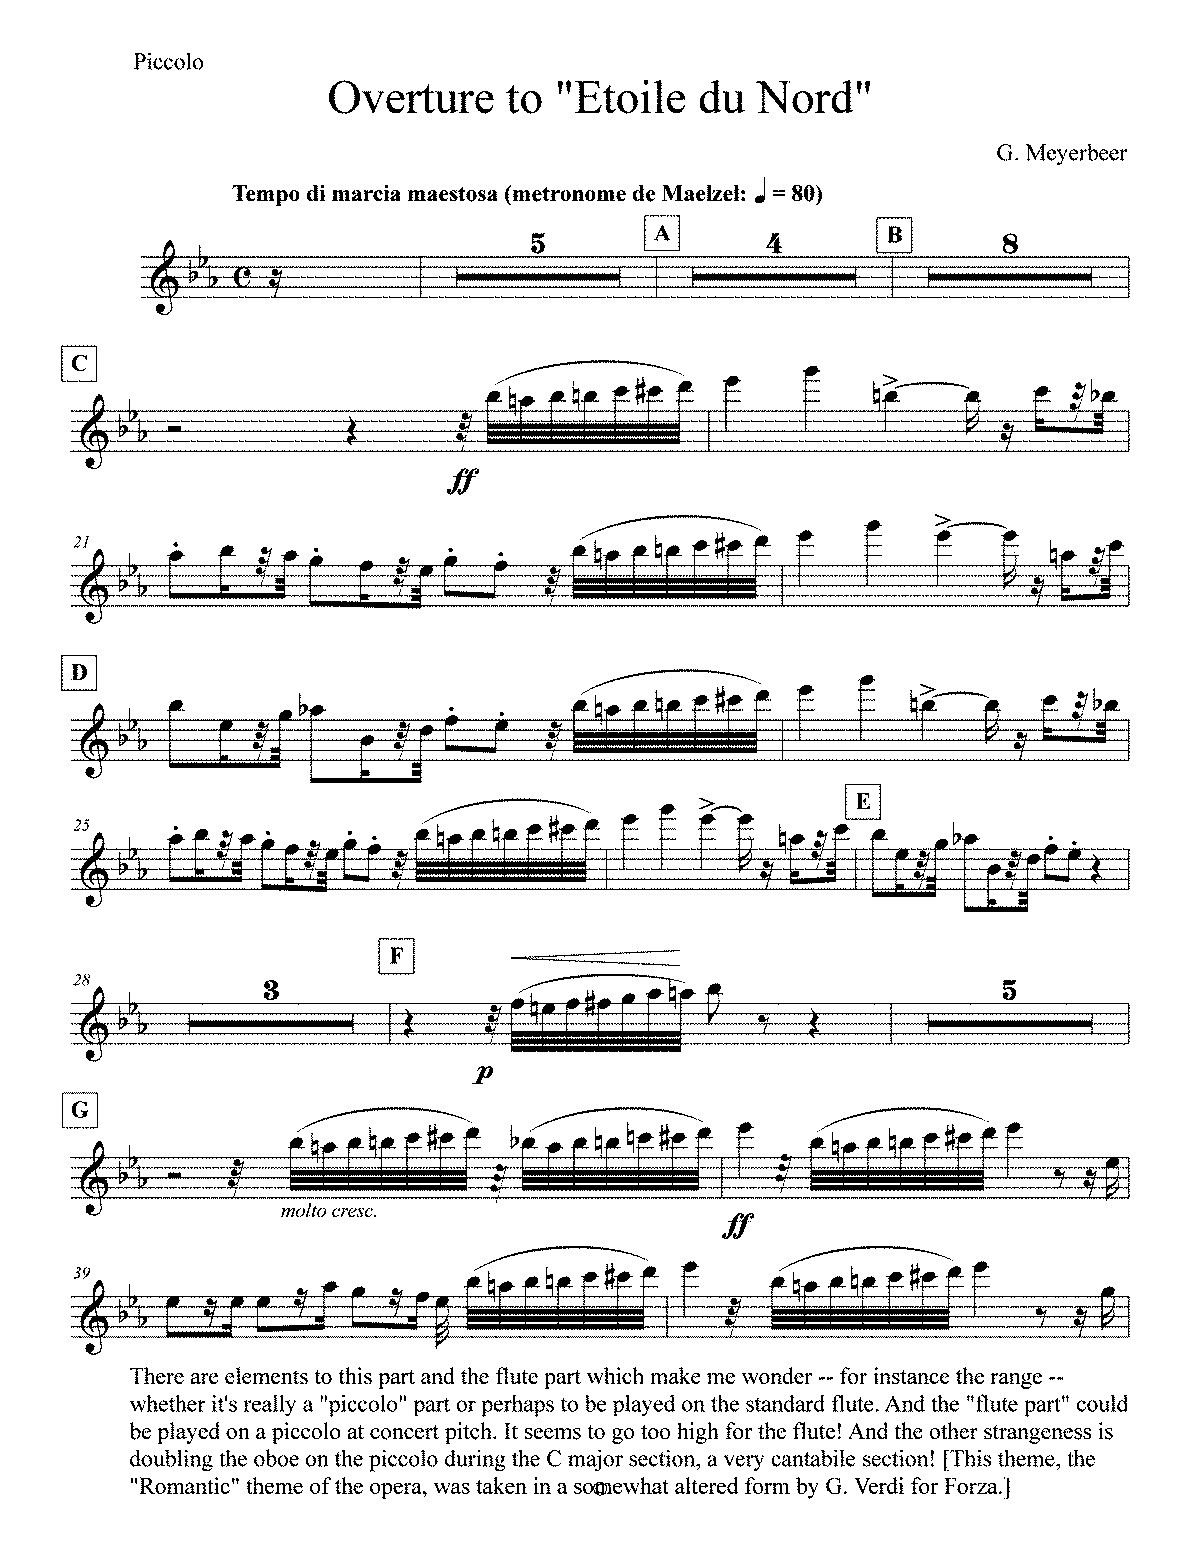 PMLP141936-MEYERBEERetoilepiccolo.pdf